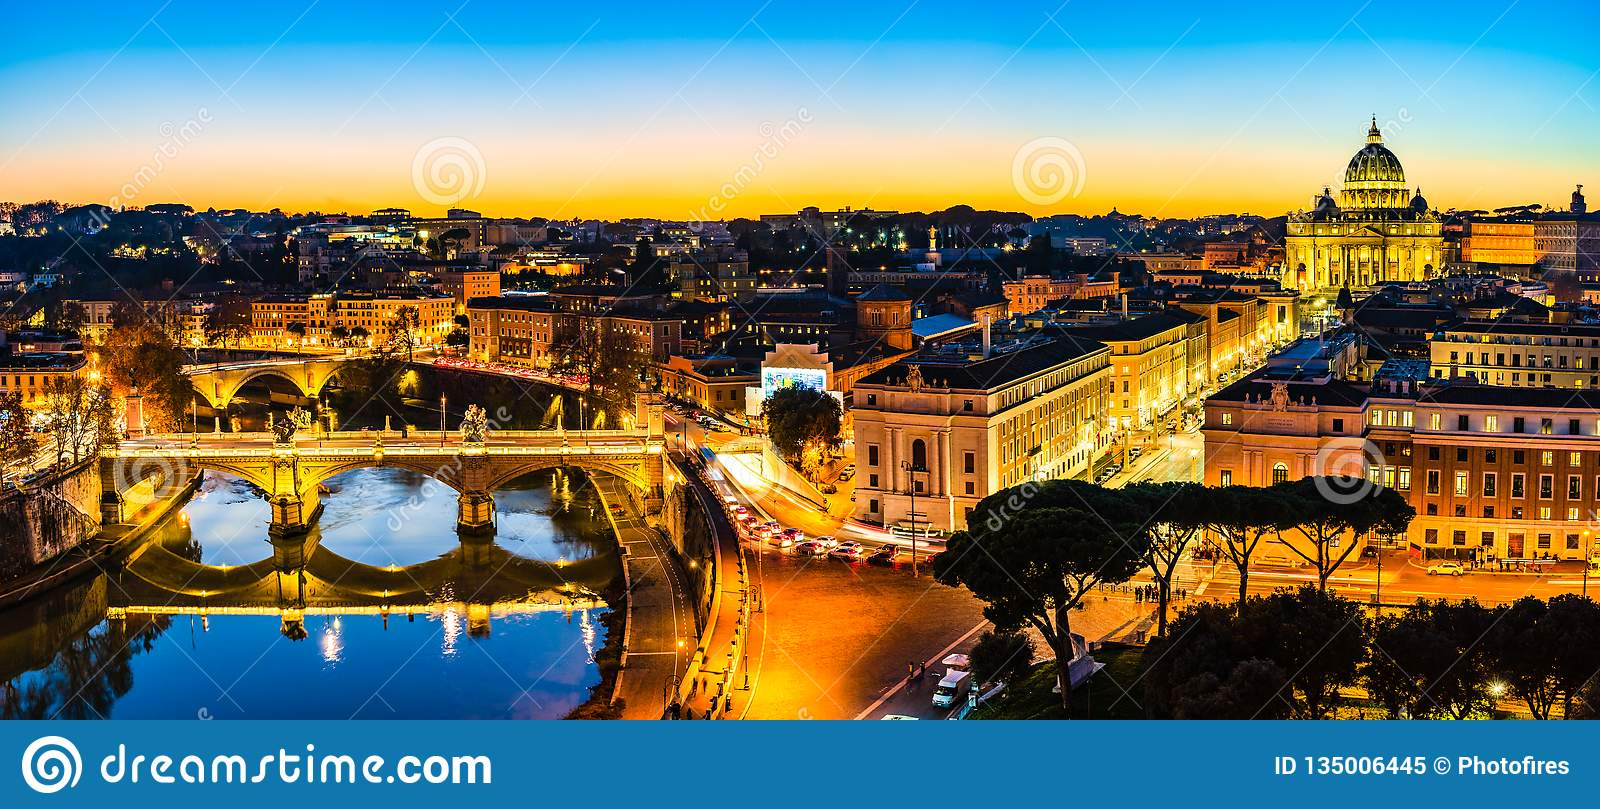 Night View Of St. Peter's Basilica And The Tiber River In